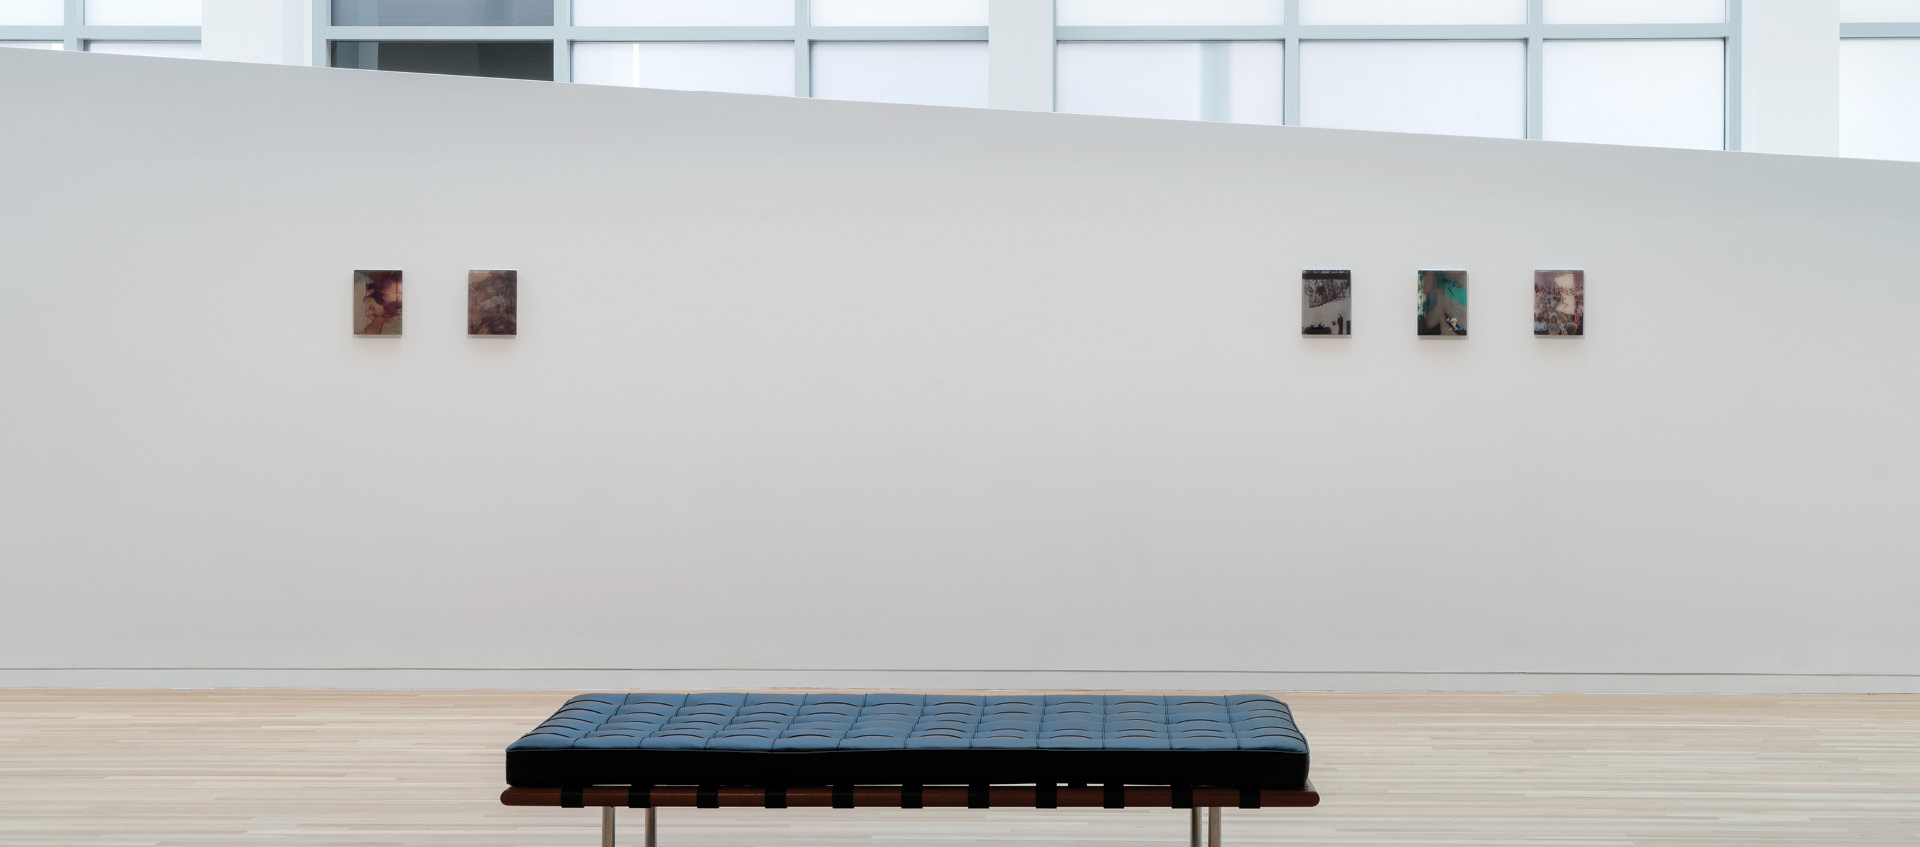 a black bench in front of a white wall with art pieces on it